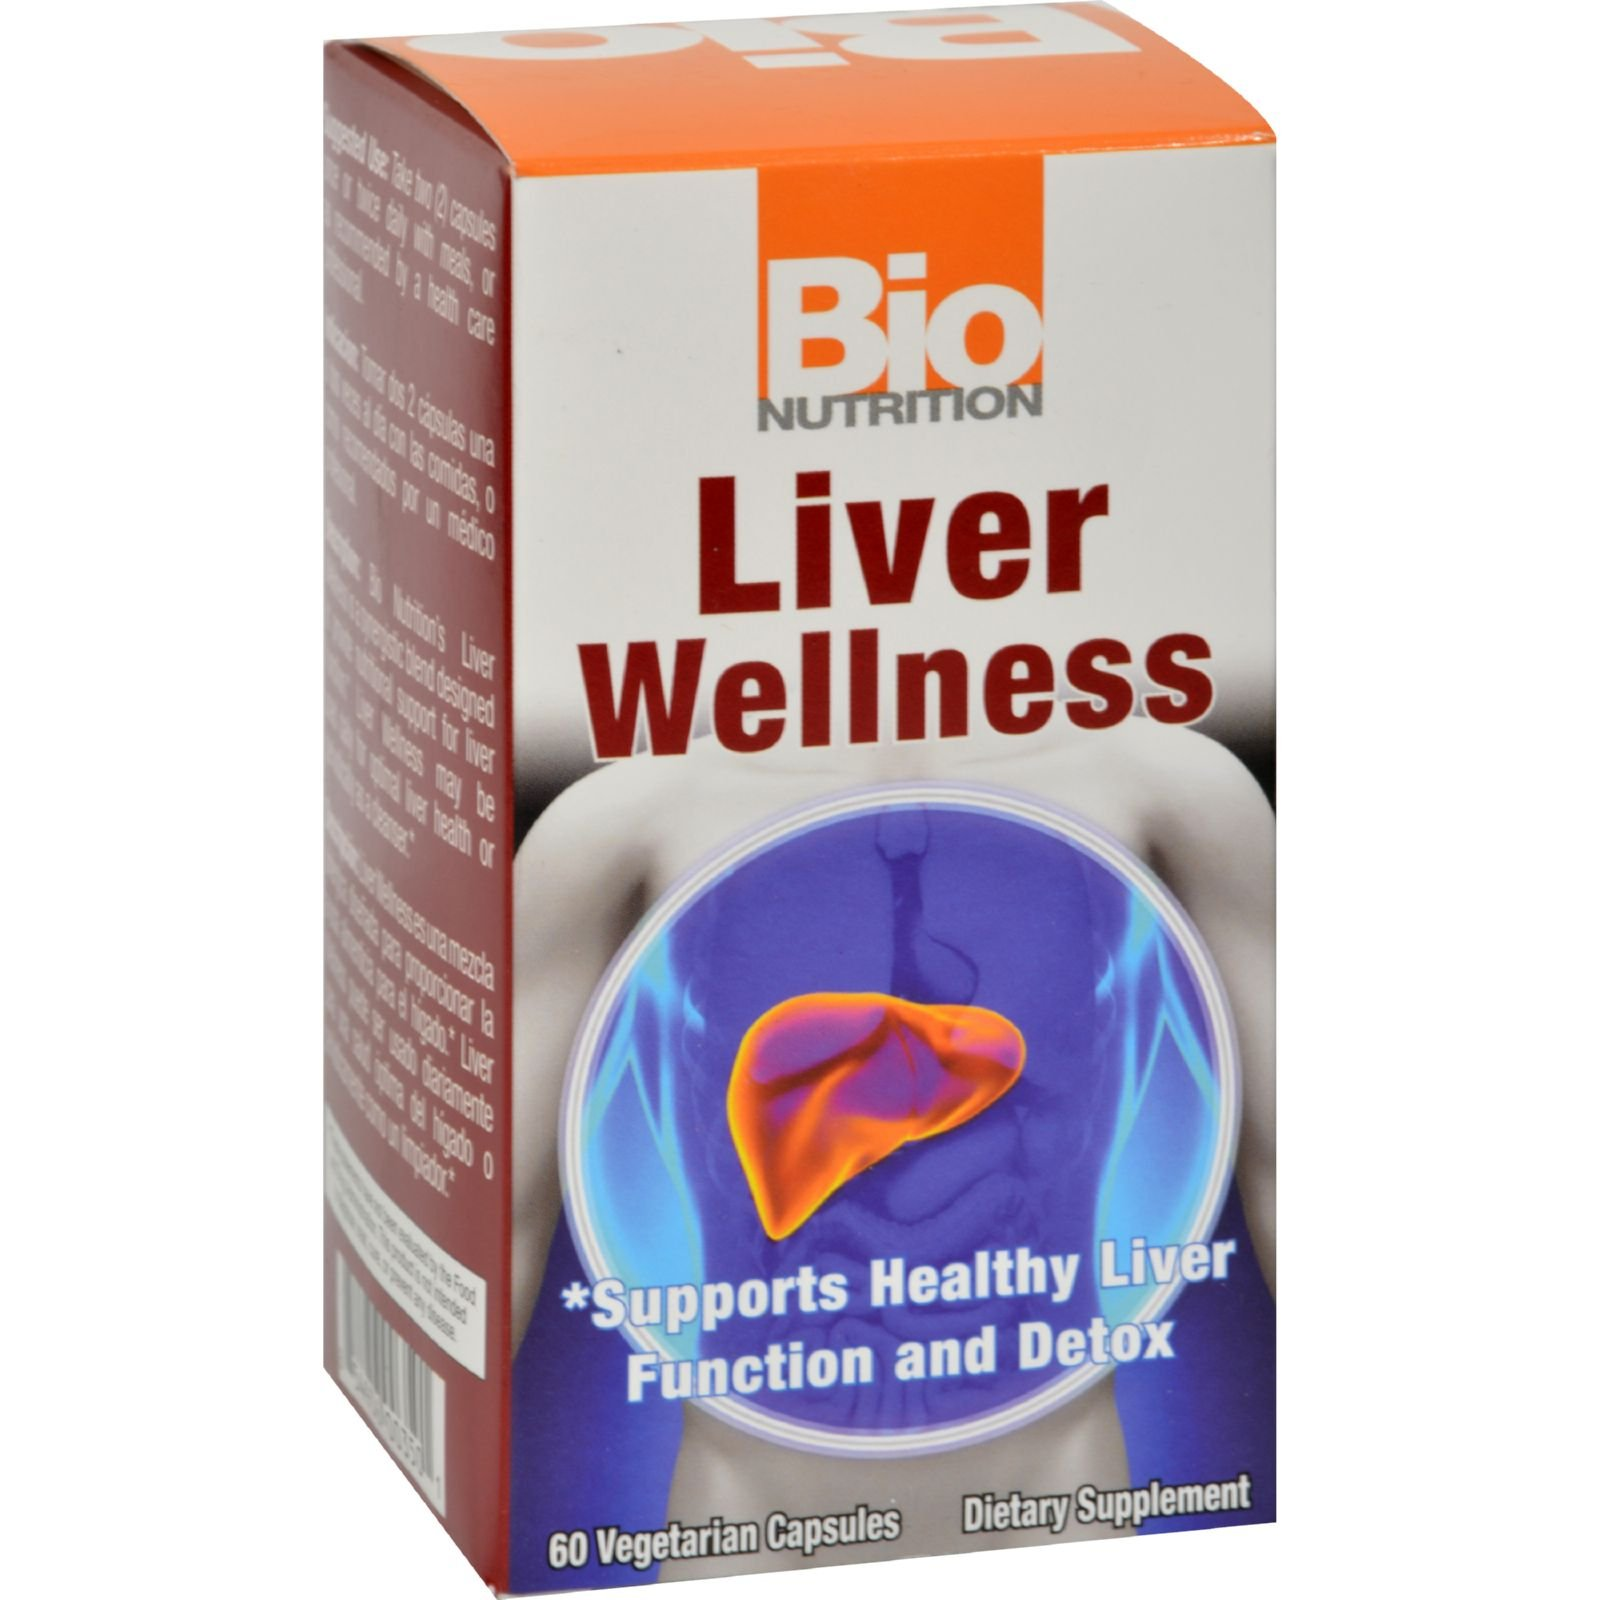 Bio Nutrition Liver Wellness - Support Healthy Liver Function - Gluten Free - 60 Vegetarian Capsules (Pack of 2)